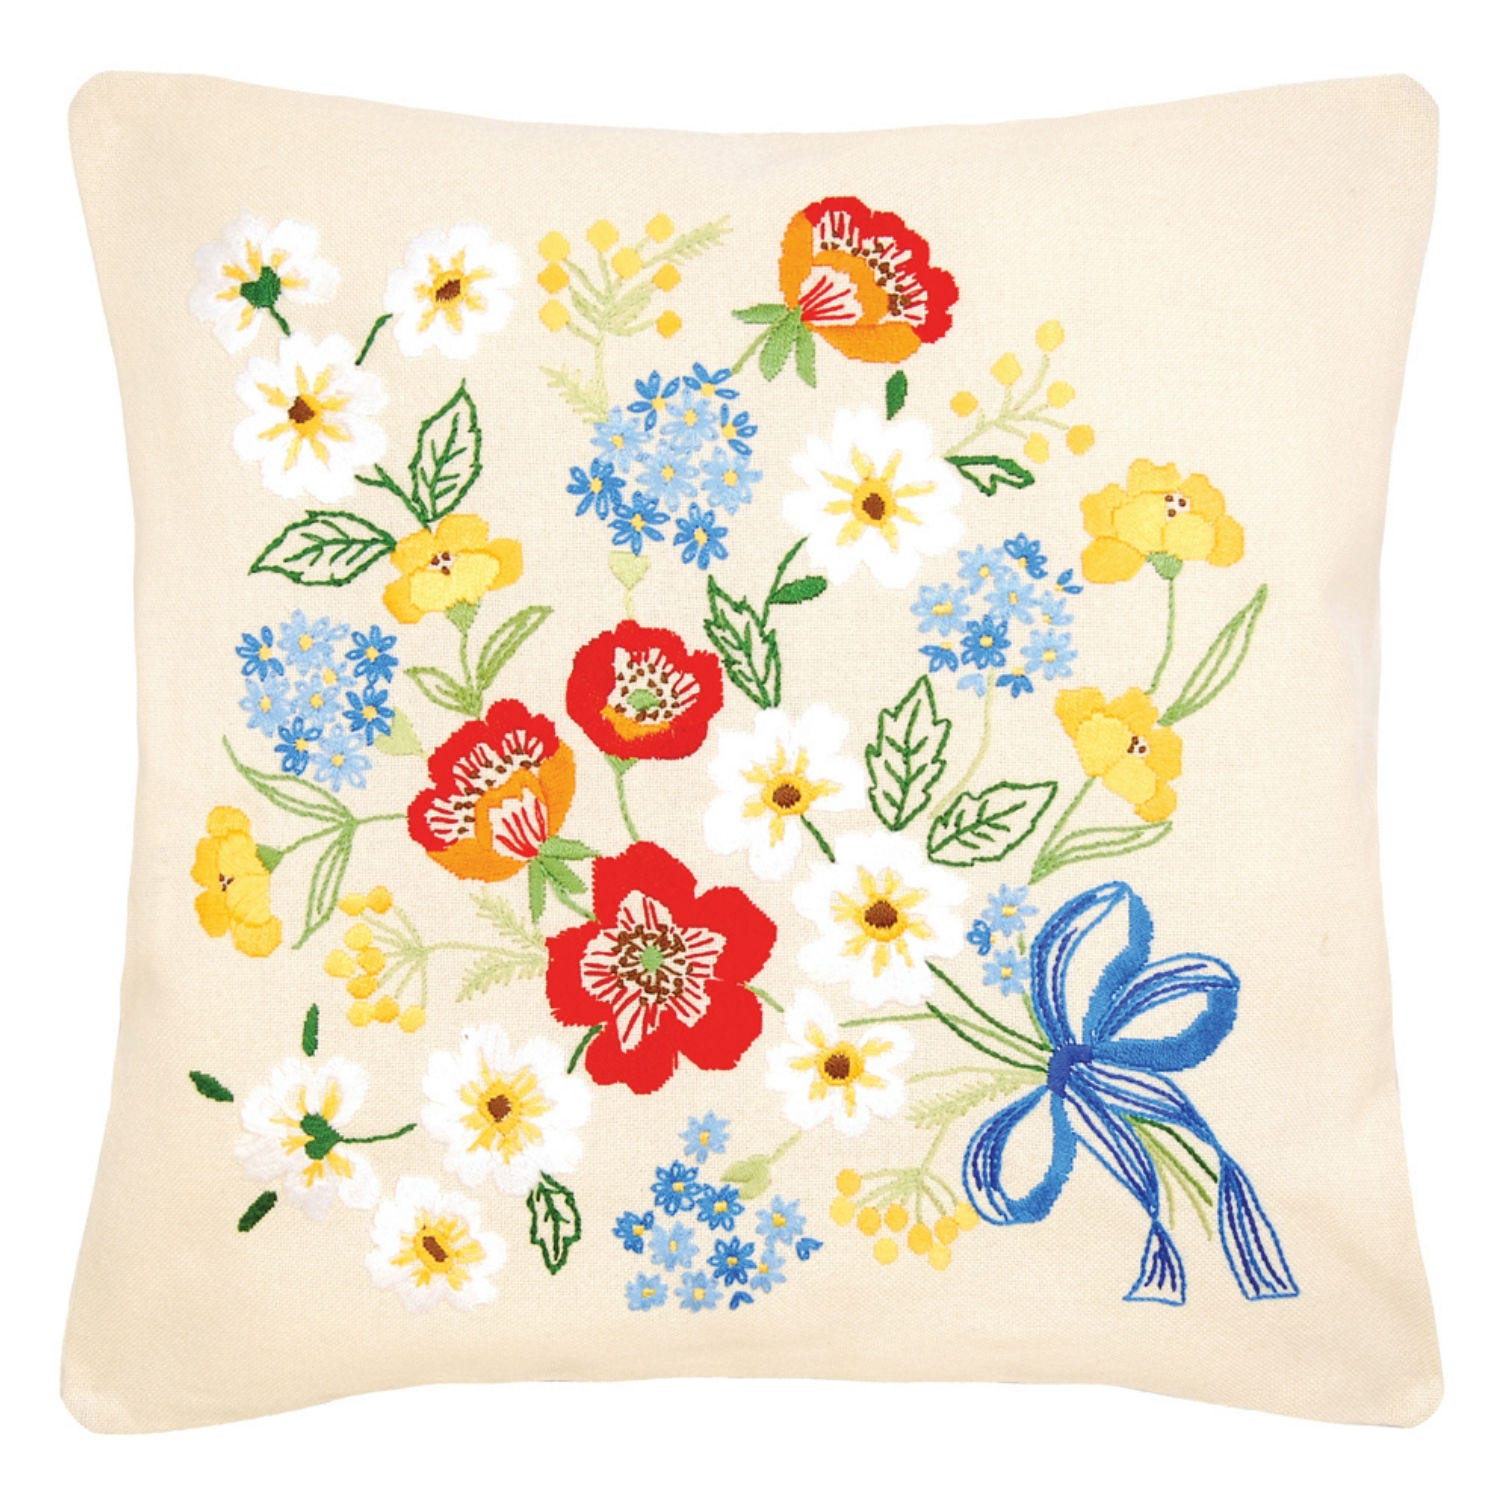 Image of Summer Bouquet Embroidery Cushion Kit